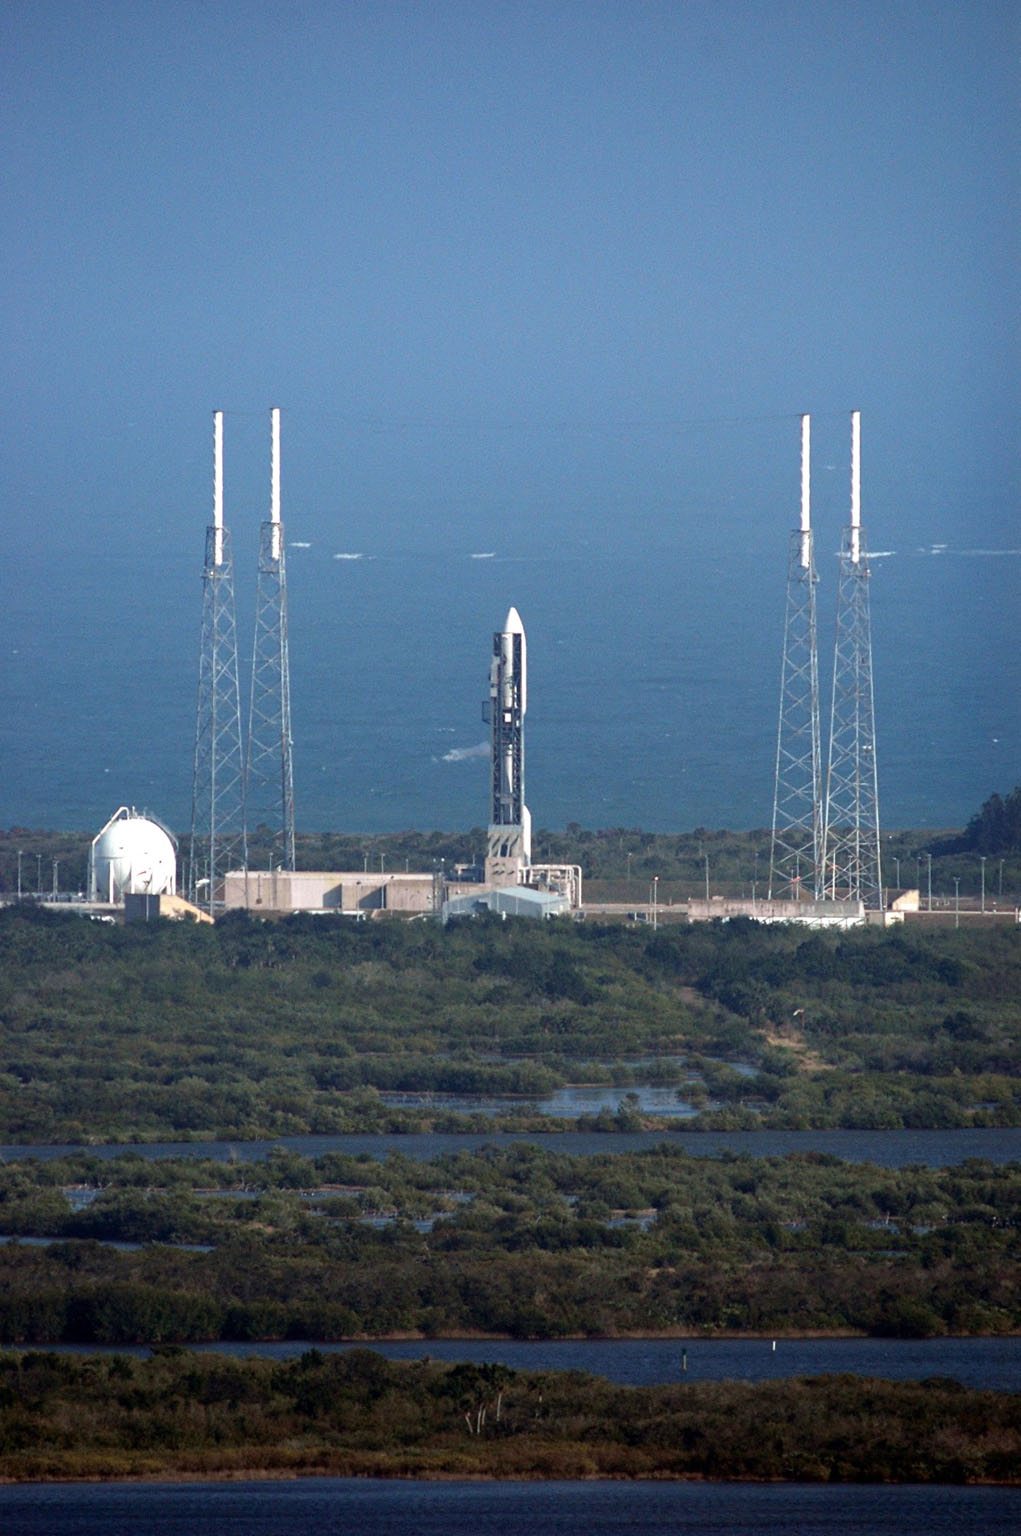 KENNEDY SPACE CENTER, FLA. - The Atlas V rocket with the New Horizons spacecraft on top sits waiting on the launch pad at Complex 41 at Cape Canaveral Air Force Station in Florida. The view is from the top of the Vehicle Assembly Building at NASA Kennedy Space Center. Surrounding the launch vehicle are four lightning masts. The launch on this date was scrubbed due to high surface winds in the area and has been rescheduled for 1:16 p.m. EST Jan. 18. The compact, 1,050-pound piano-sized probe will get a boost from a kick-stage solid propellant motor for its journey to Pluto. New Horizons will be the fastest spacecraft ever launched, reaching lunar orbit distance in just nine hours and passing Jupiter 13 months later. The launch at this time allows New Horizons to fly past Jupiter in early 2007 and use the planet?s gravity as a slingshot toward Pluto. The Jupiter flyby trims the trip to Pluto by as many as five years and provides opportunities to test the spacecraft?s instruments and flyby capabilities on the Jupiter system. New Horizons could reach the Pluto system as early as mid-2015, conducting a five-month-long study possible only from the close-up vantage of a spacecraft. Photo credit: NASA/Kim Shiflett